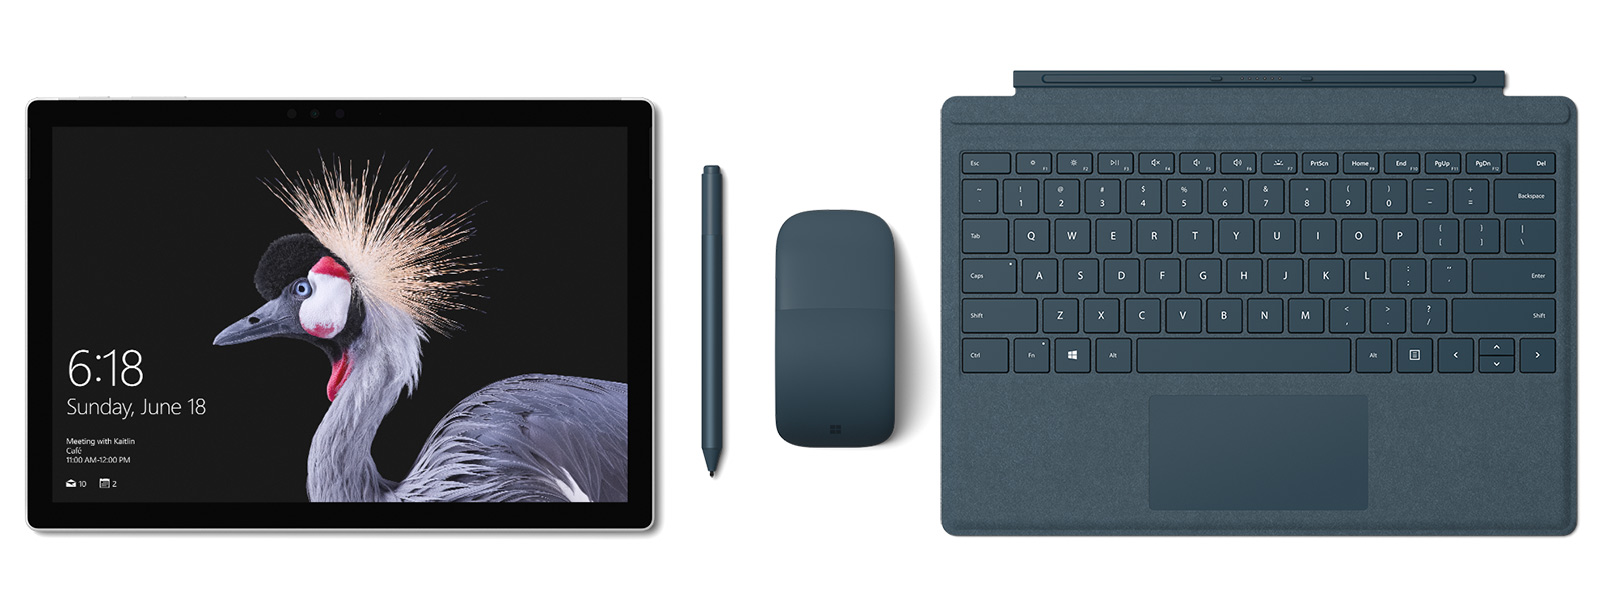 Imej Surface Pro dengan Surface Pro Signature Type Cover, Pen Surface dan Surface Arc Mouse dalam warna biru kobalt. Pen Surface mengiringi.